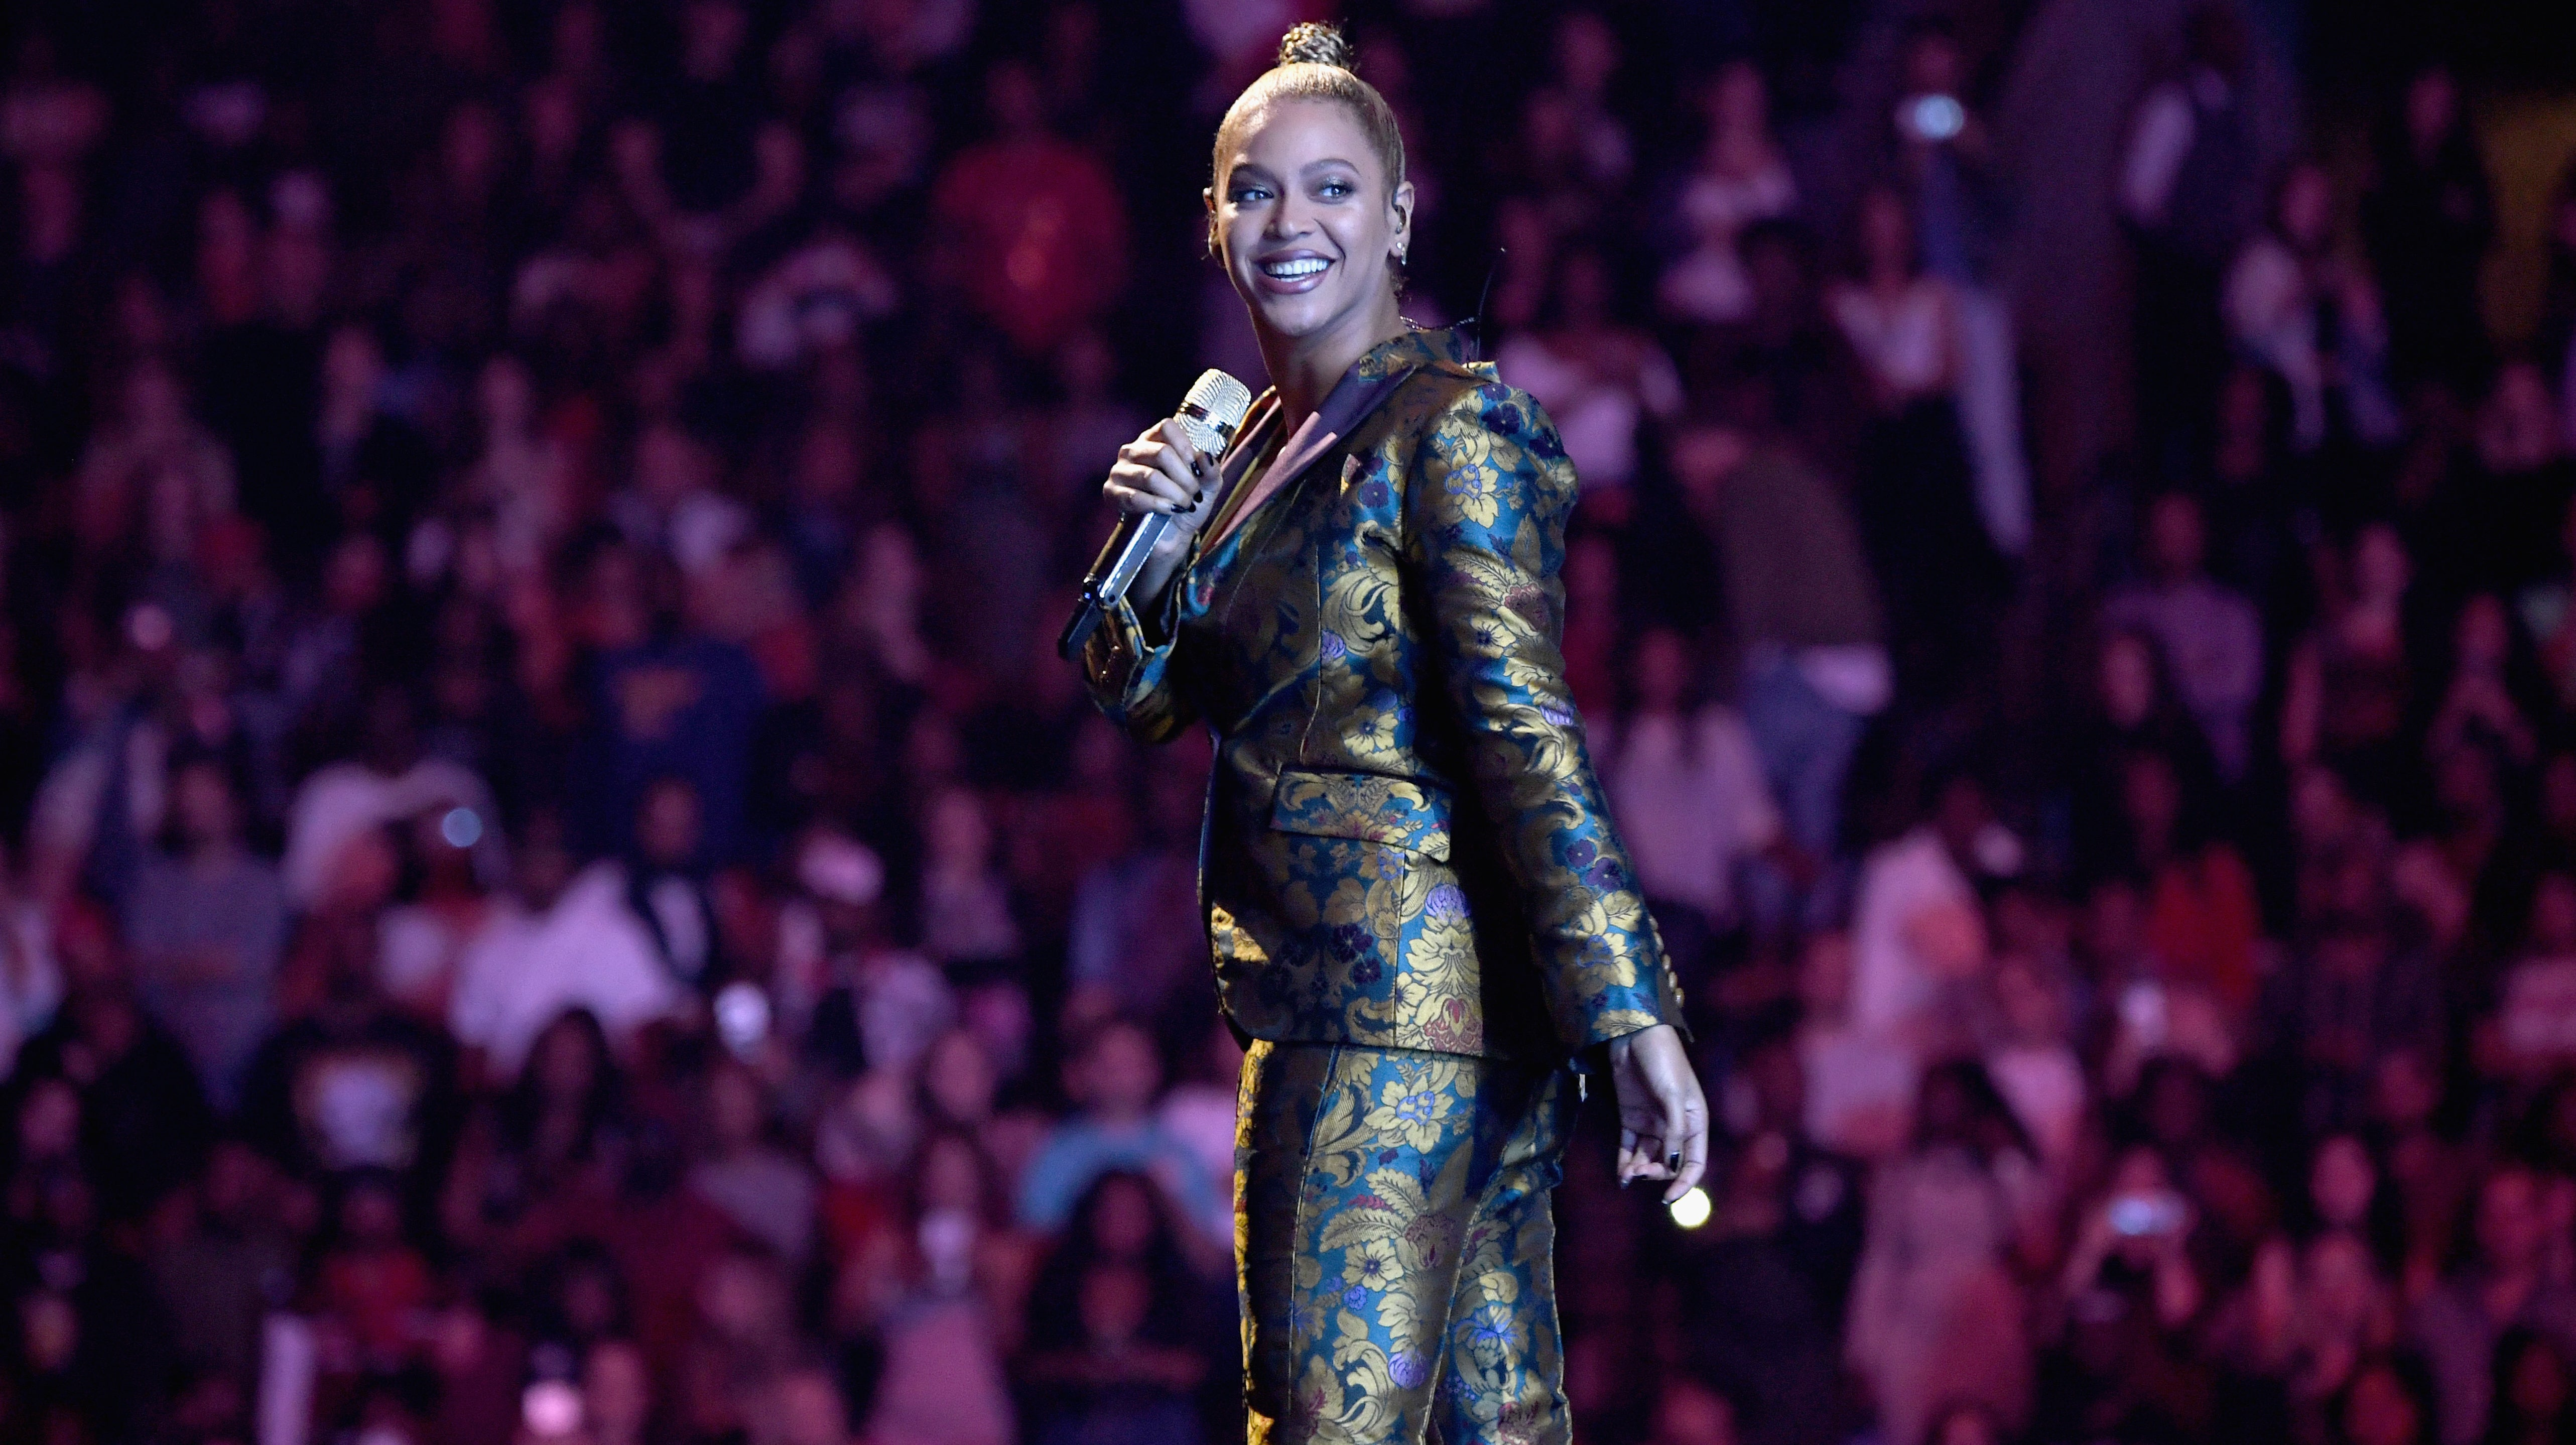 Beyonce.com Lawsuit Reminds Us How Shitty The Web Is For Users With Visual Impairment